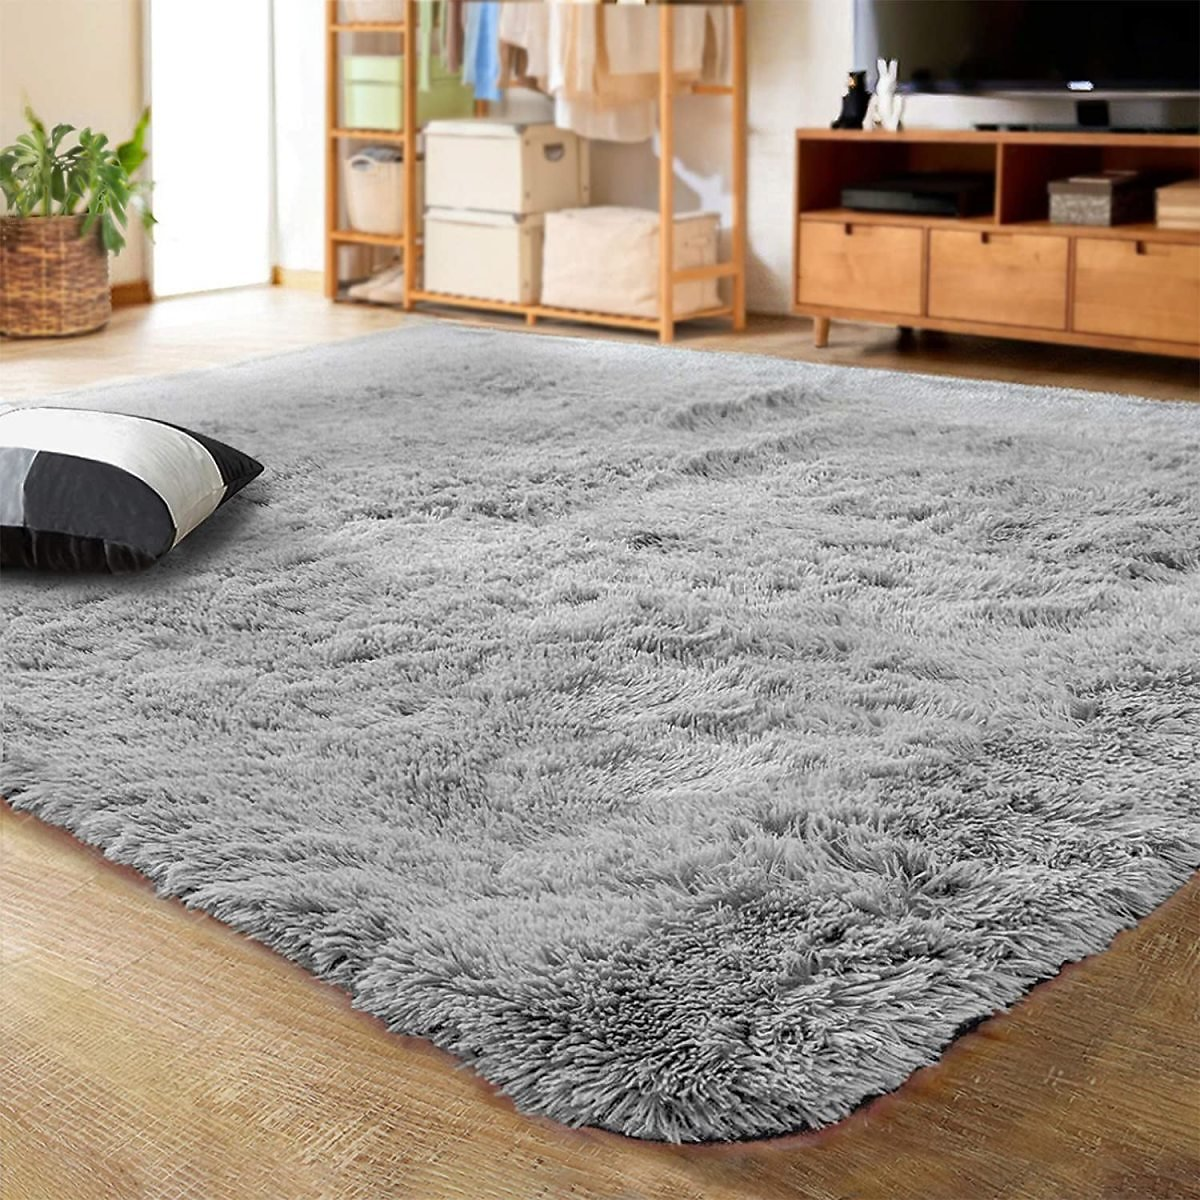 Ultra Soft Indoor Modern Area Rugs By LOCHAS, Fluffy Living Room Carpets for Children Bedroom Home Decor Nursery Rug 4x5.3 Feet,